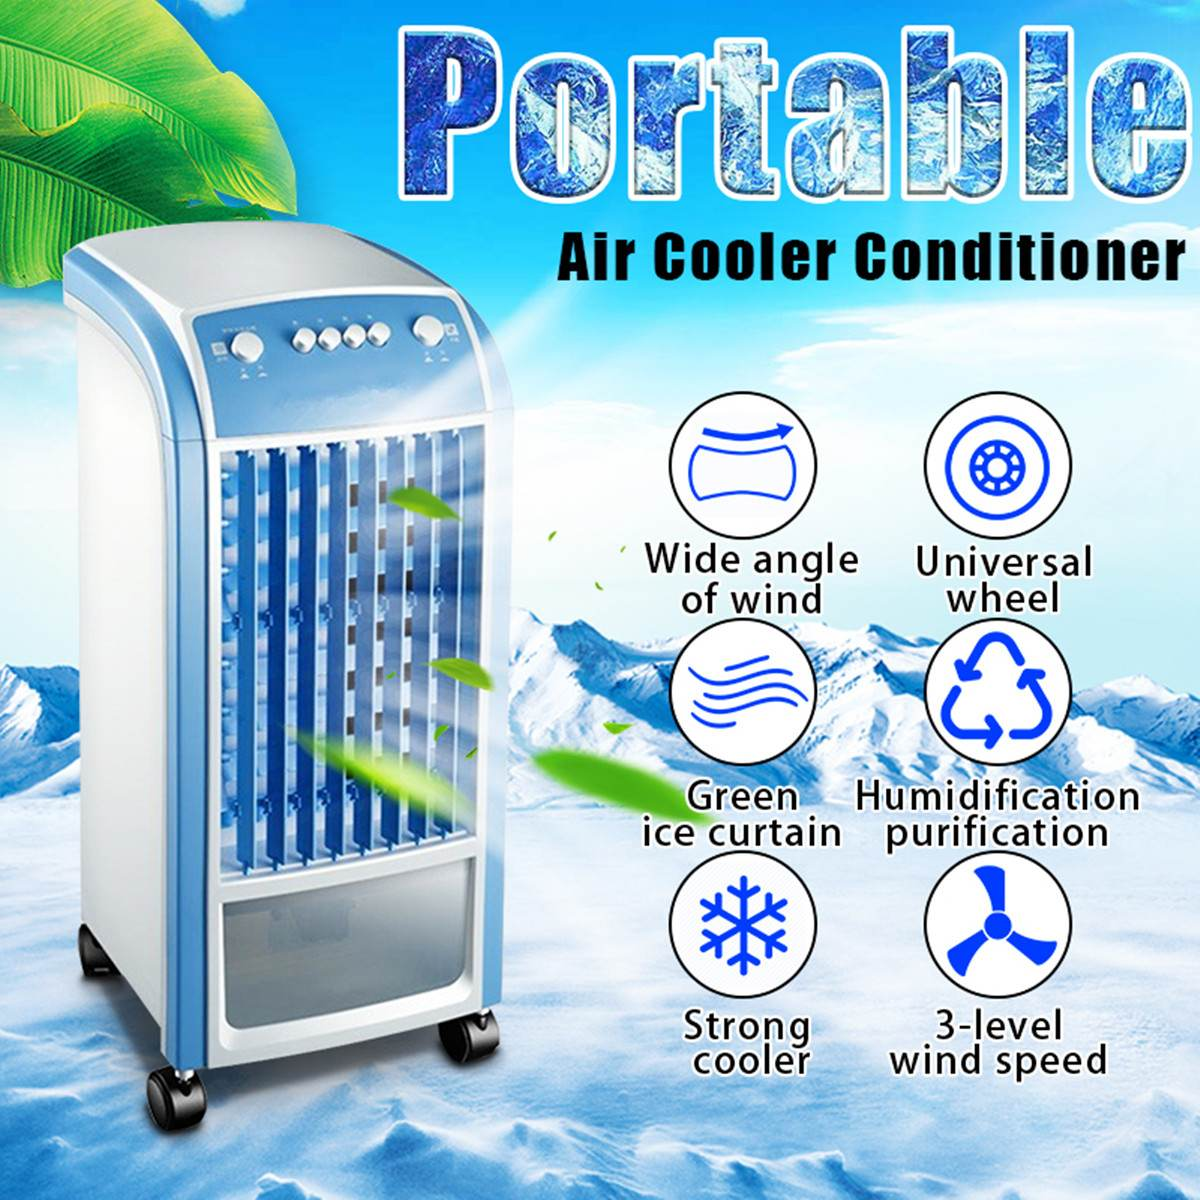 Air Cooler Unit 4L 80W & Remote Control Flow Swing Conditioning Fan Home Evaporative Air Cooler Air Conditioning Fan